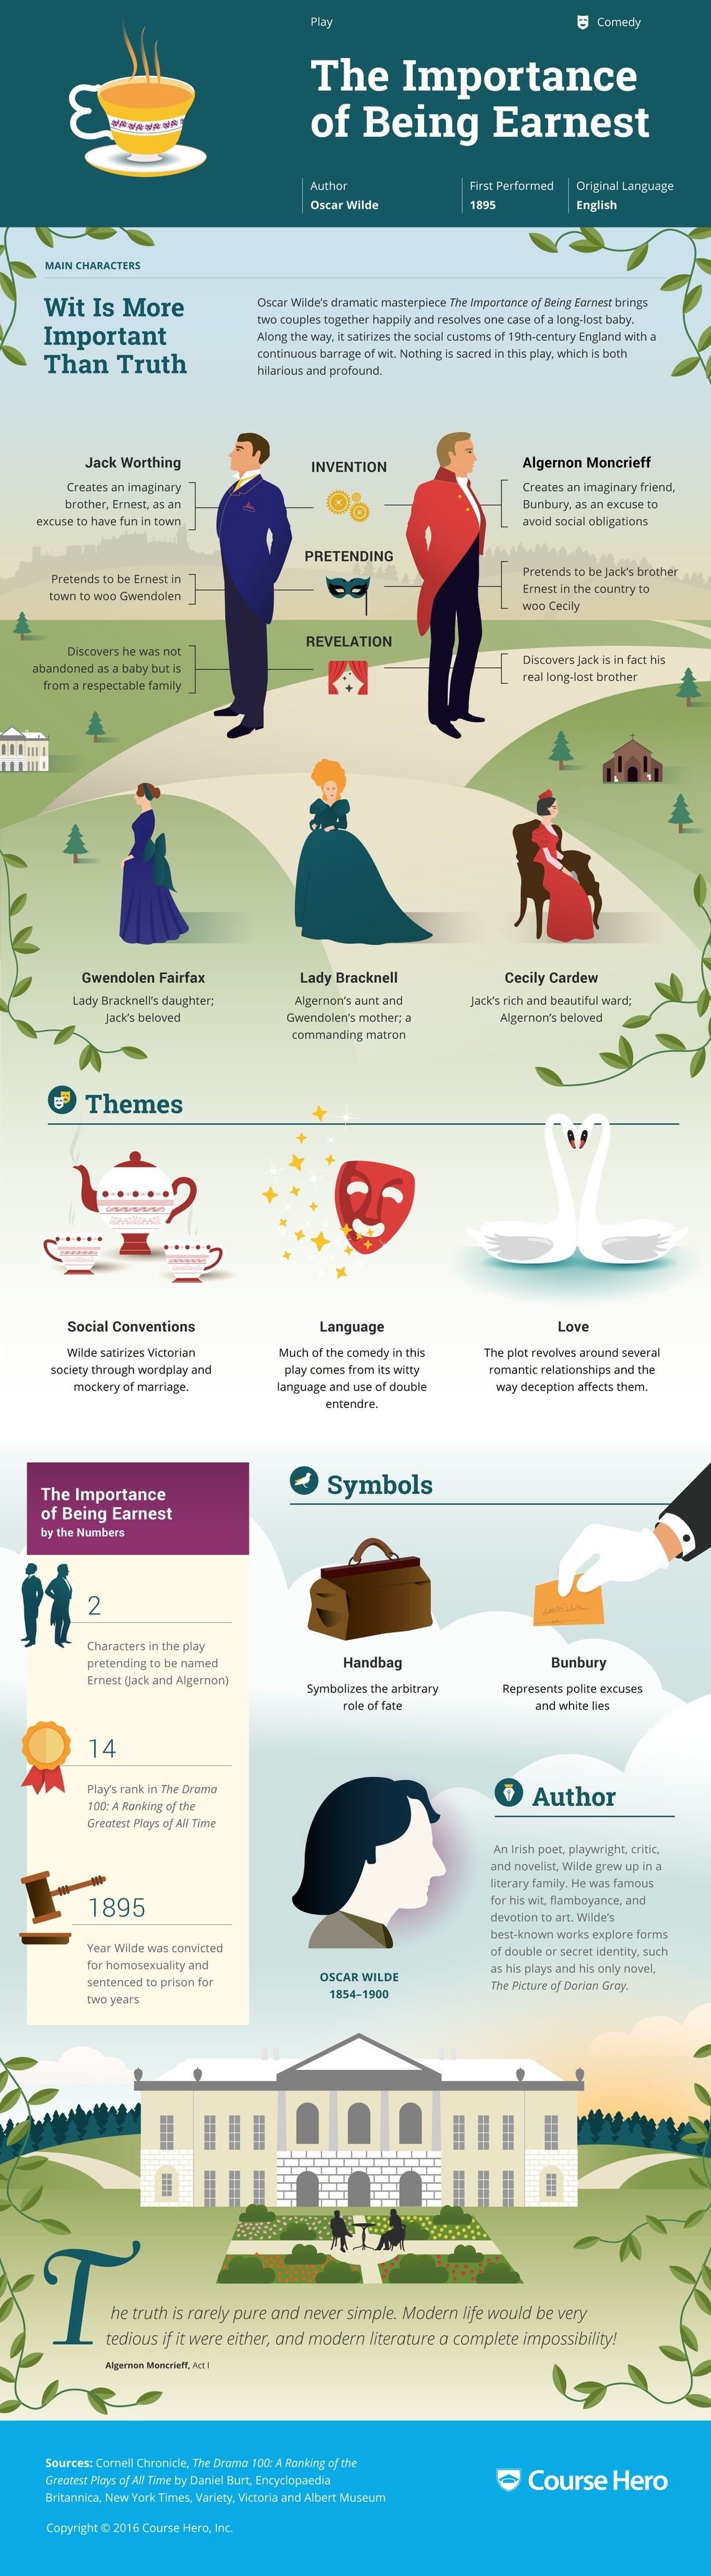 the importance of being earnest infographic course hero my the importance of being earnest infographic course hero